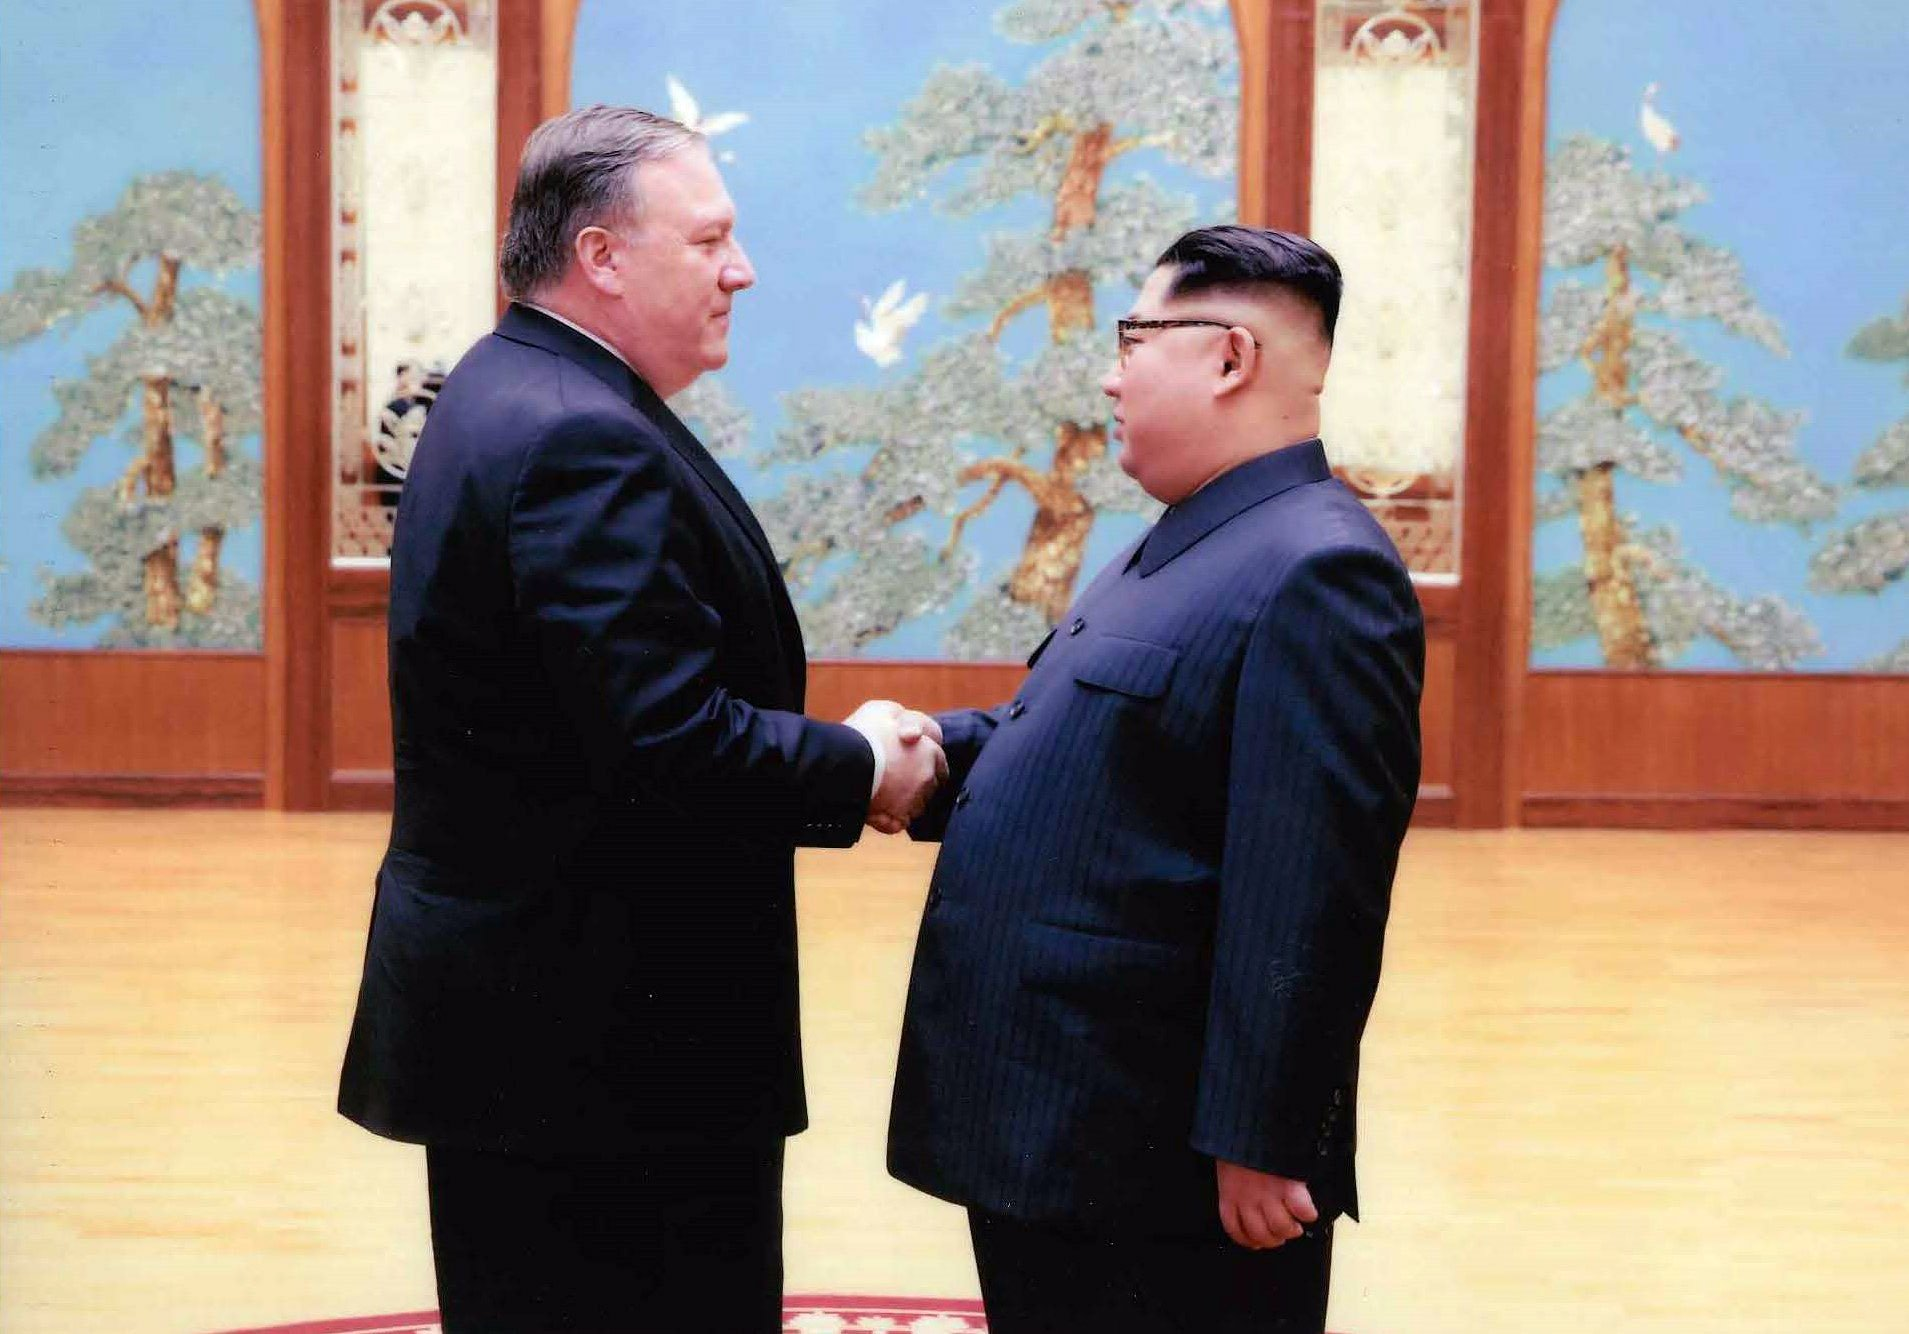 PYONGYANG, NORTH KOREA - UNDATED: In this handout provided by The White House, CIA director Mike Pompeo (L) shakes hands with North Korean leader Kim Jong Un in this undated image in Pyongyang, North Korea. (The White House via Getty Images)